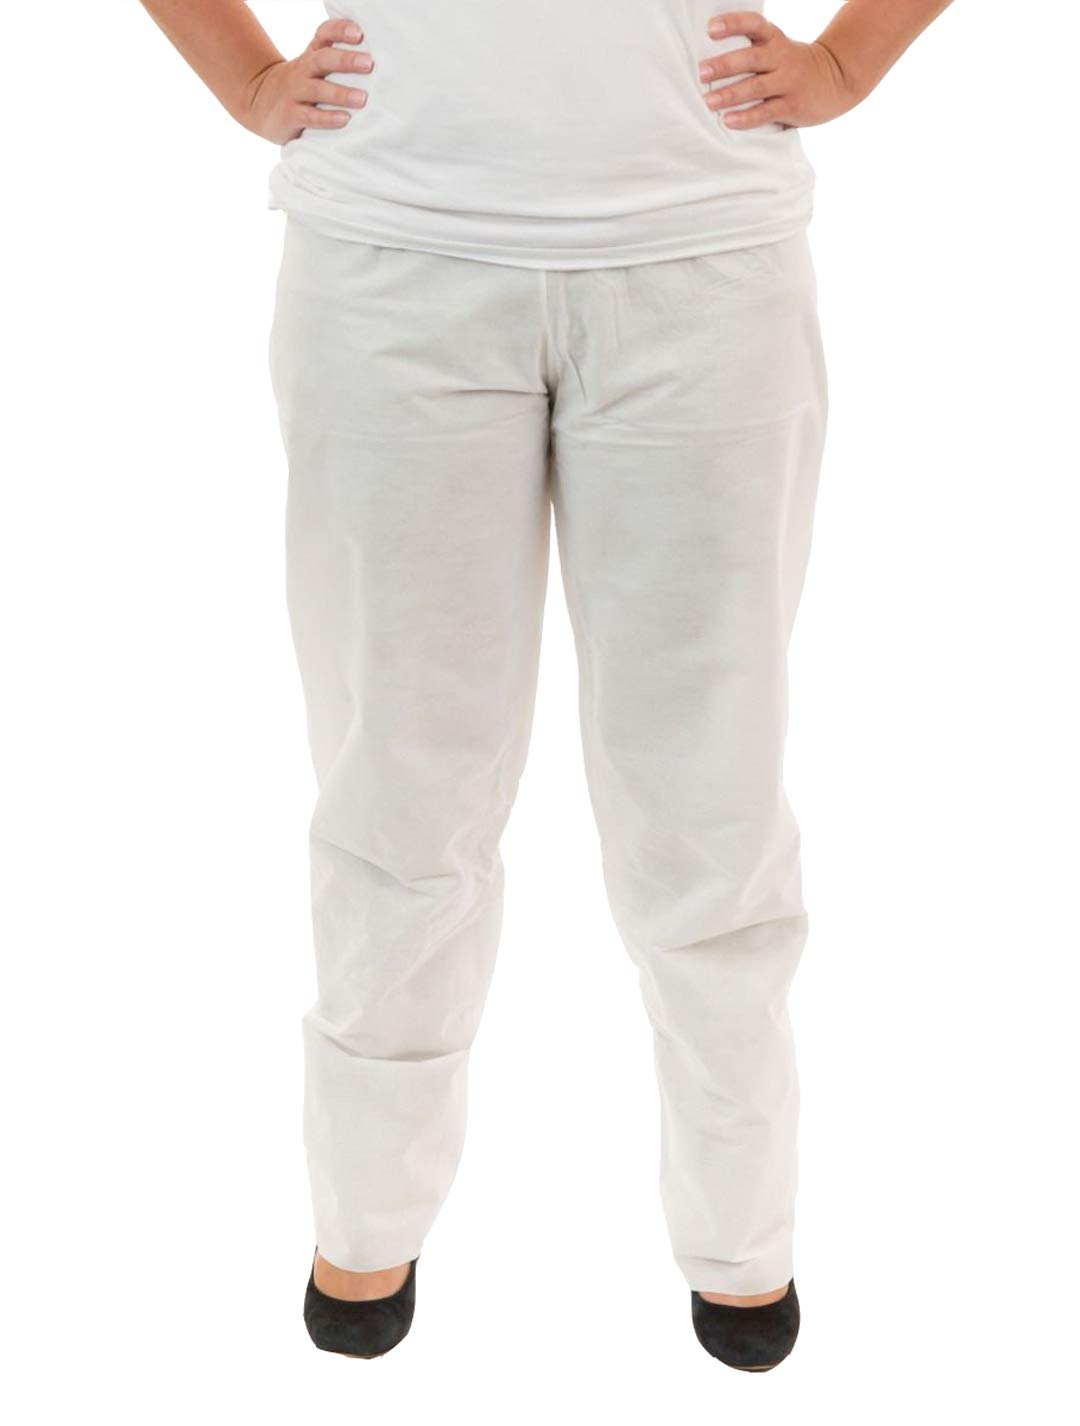 International Enviroguard SMS Pants (White) with Elastic Waist | General Cleanup & Protection (2XL, Case of 30) by International Enviroguard (Image #5)